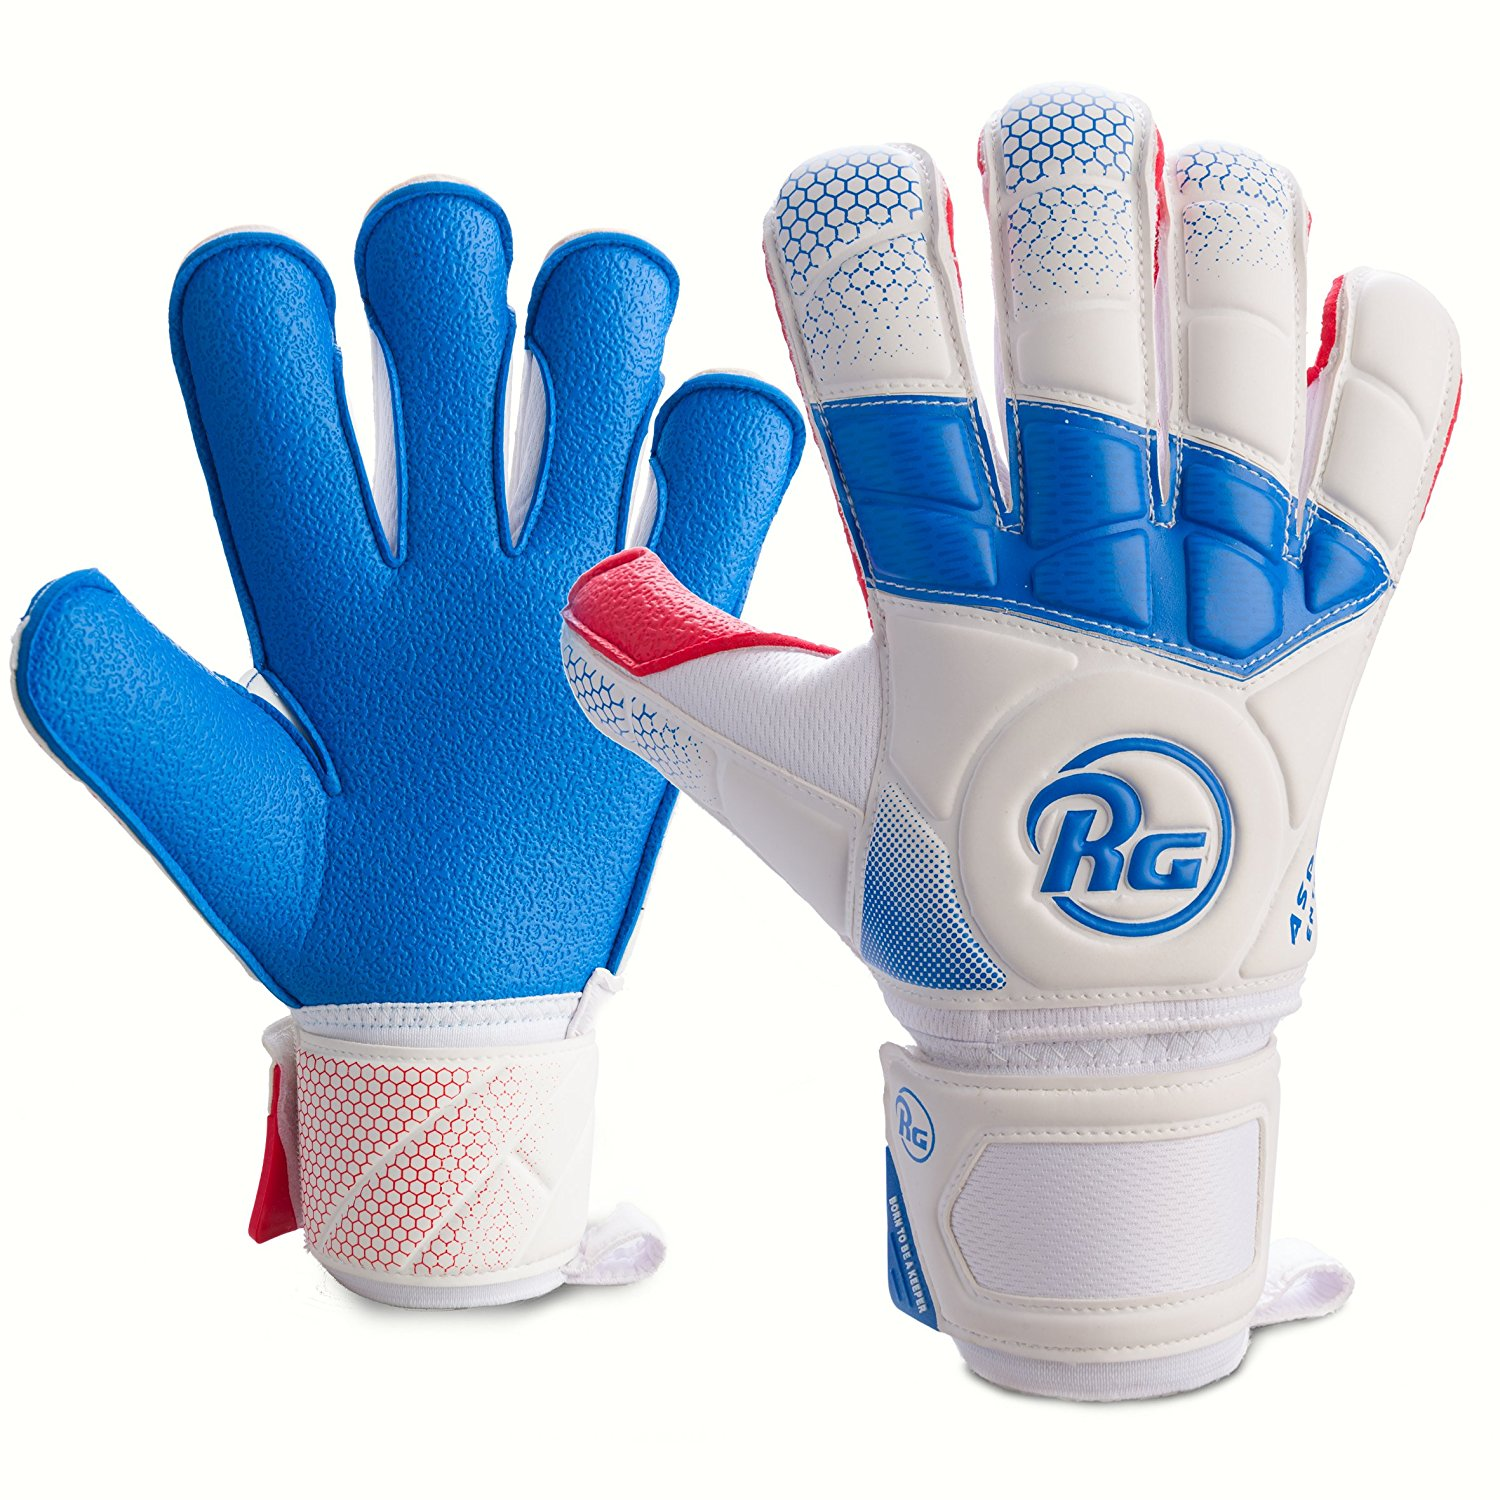 Cheap Goalkeeper Gloves With Finger Spines 36b2d20d4a8d